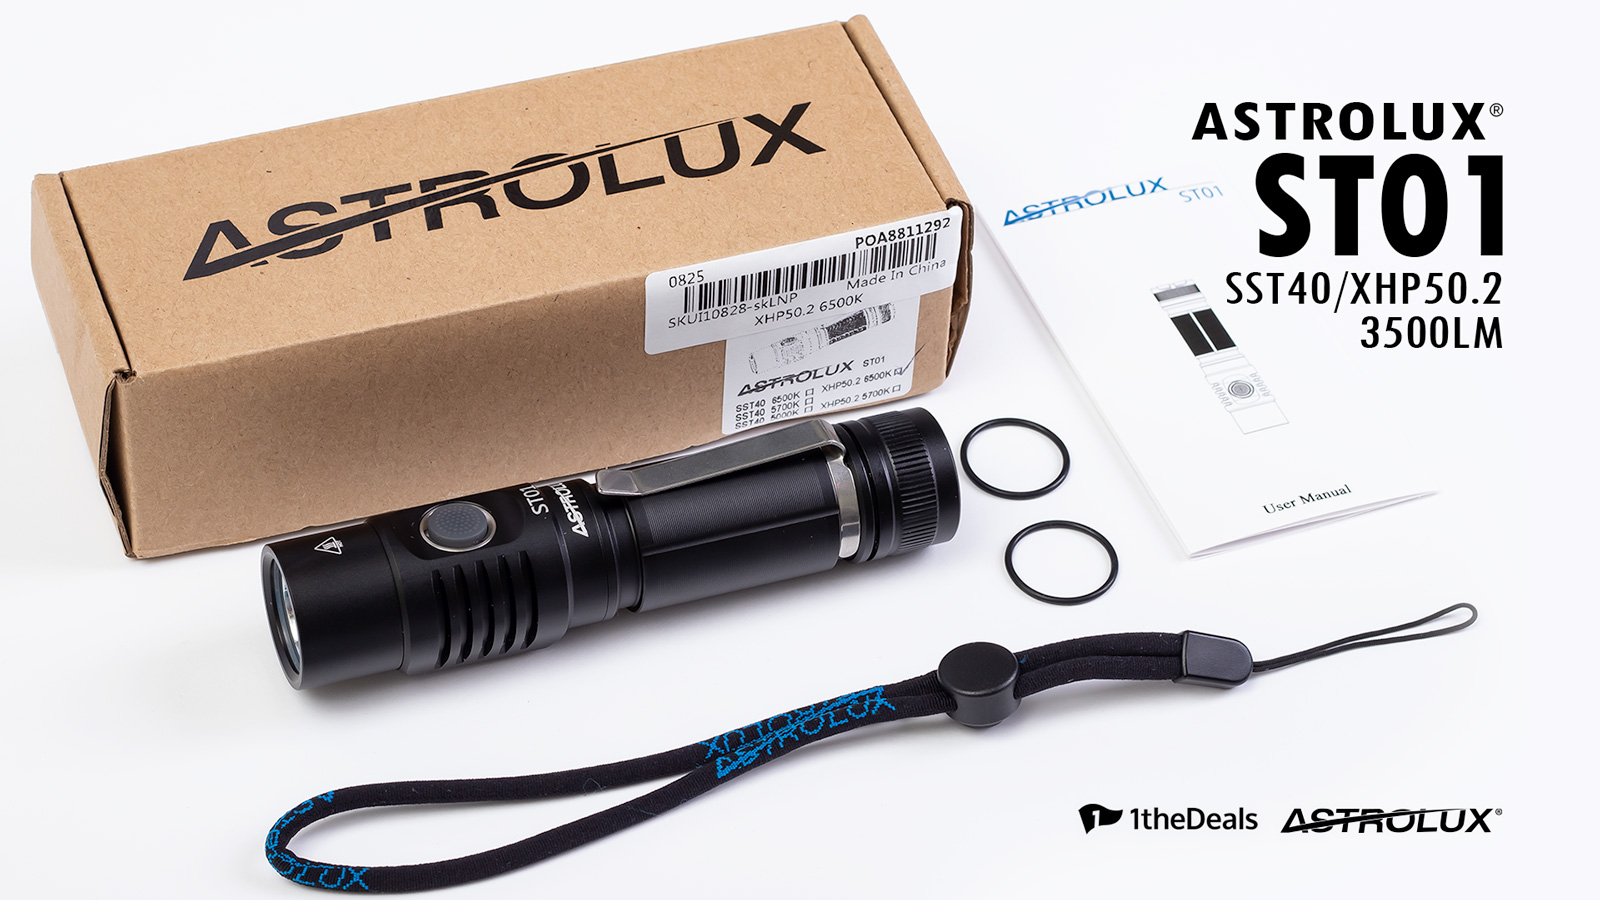 1theDeals Astrolux ST01 Flashlight